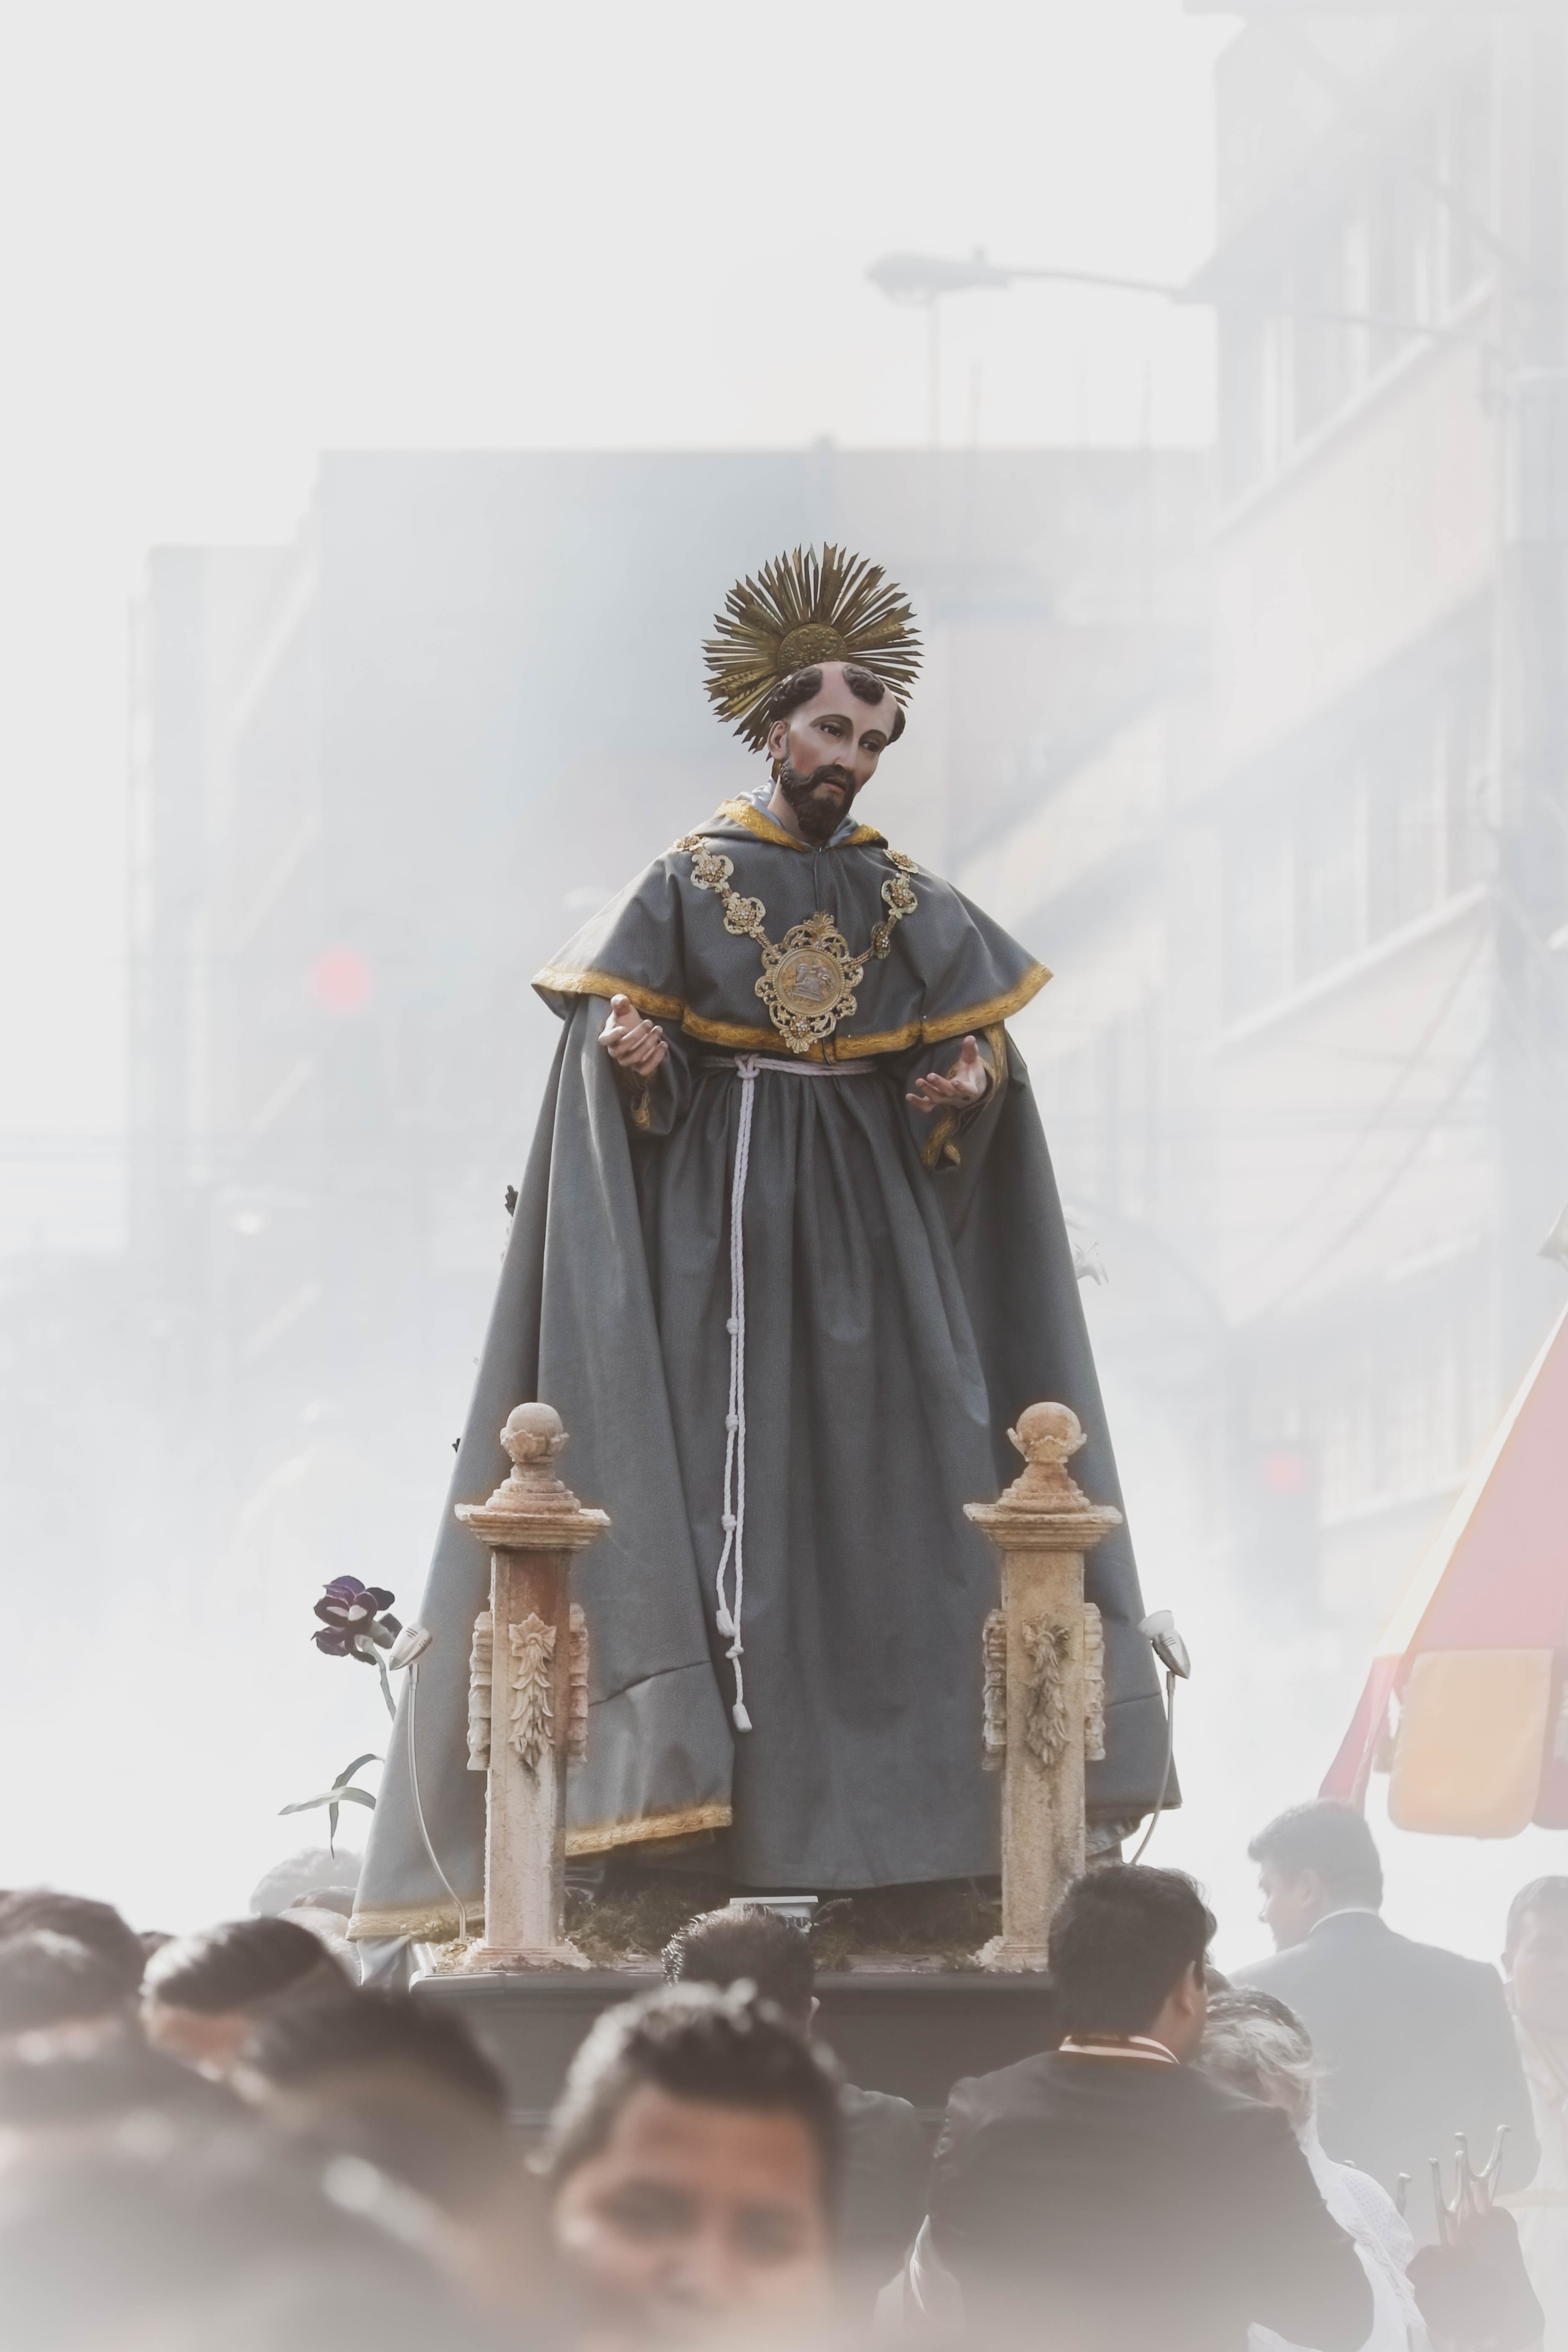 man in grey and yellow robe religious statuette being carried by people